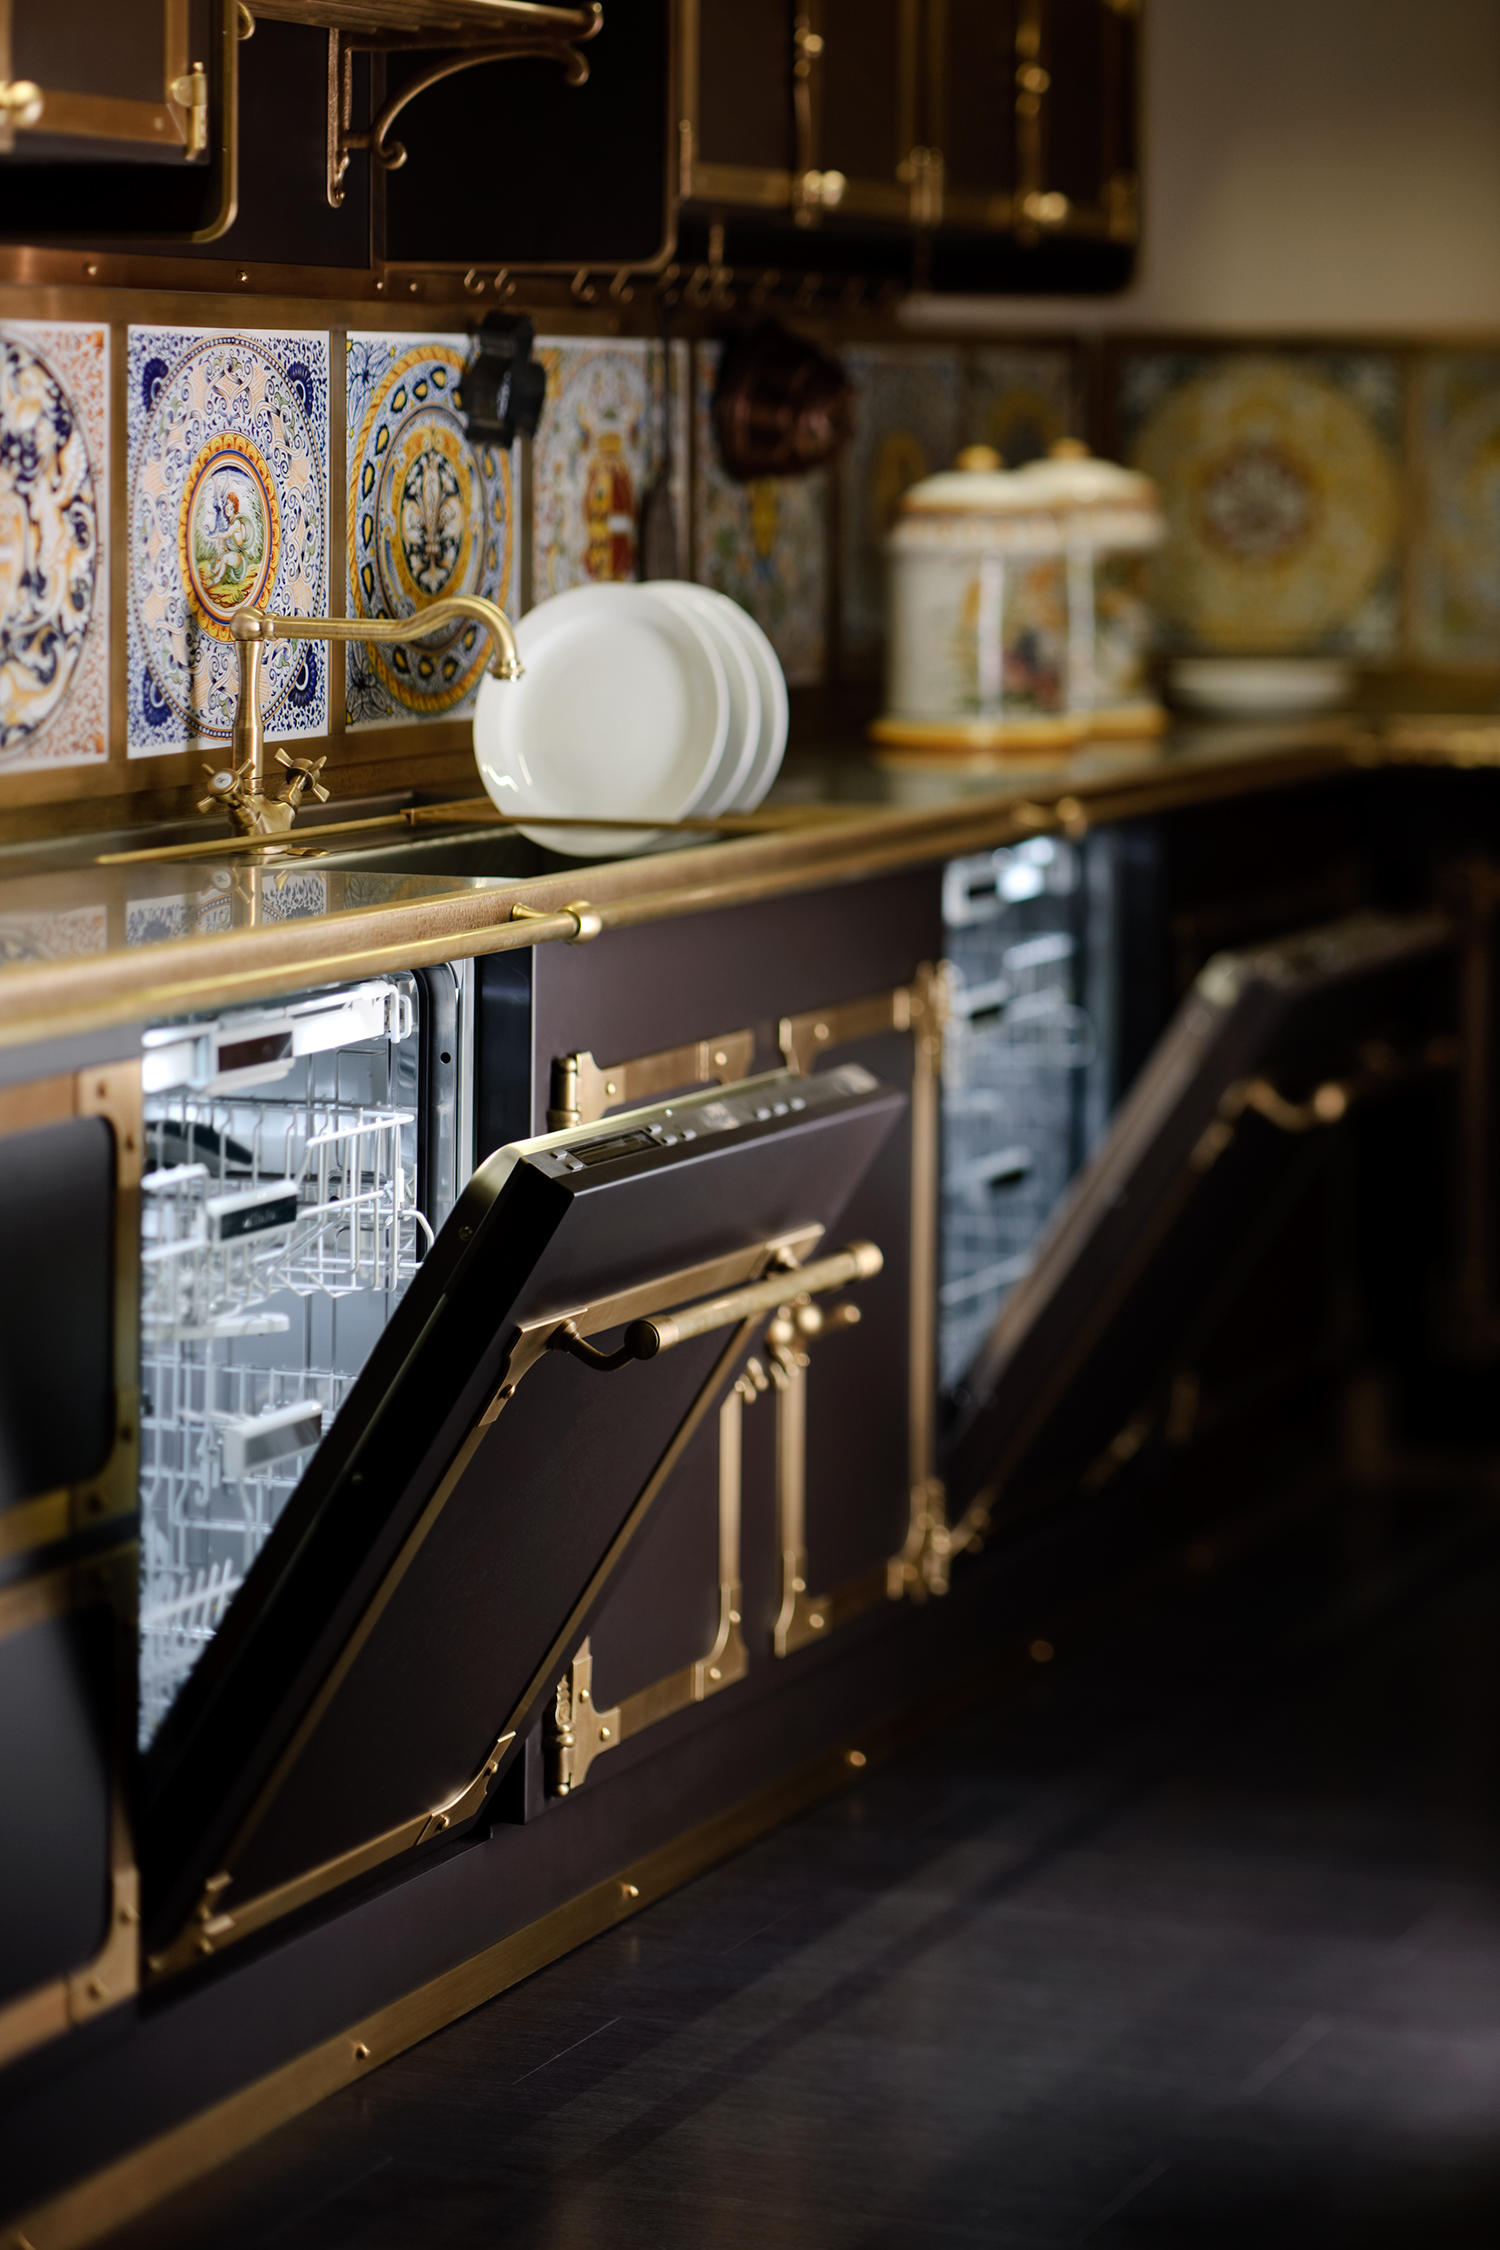 Küchen Palast Medici Palace Kitchen Fitted Kitchens From Officine